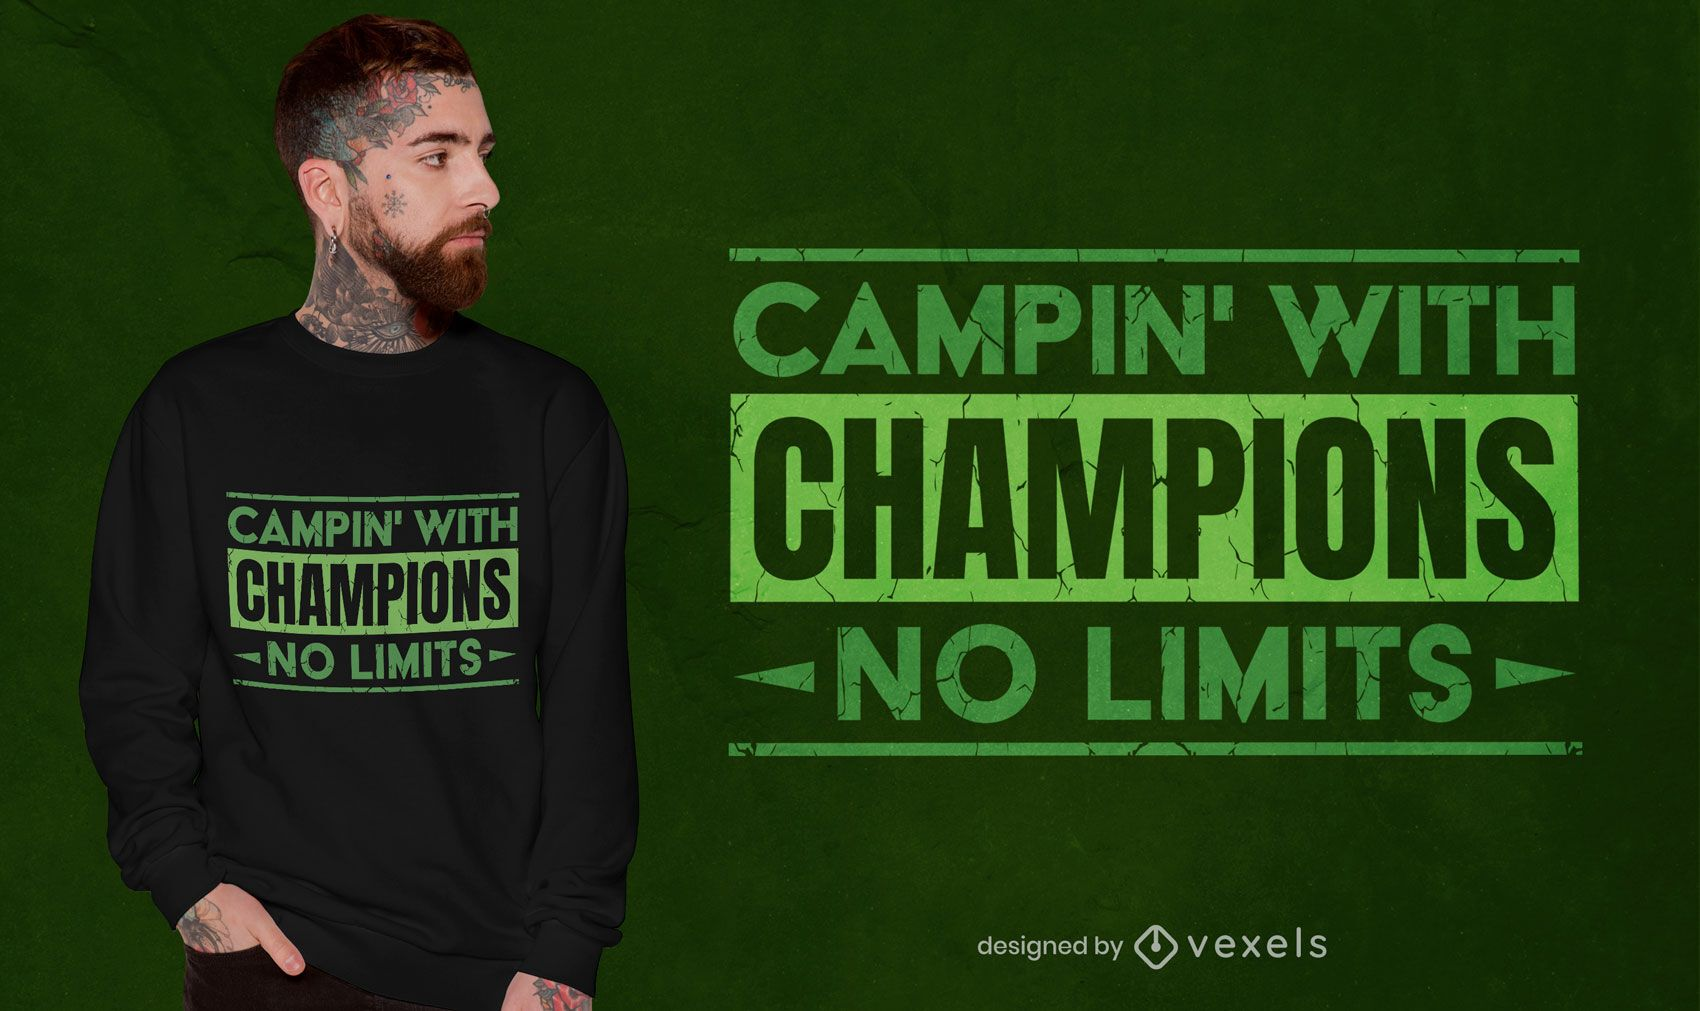 Camping with champions quote t-shirt design